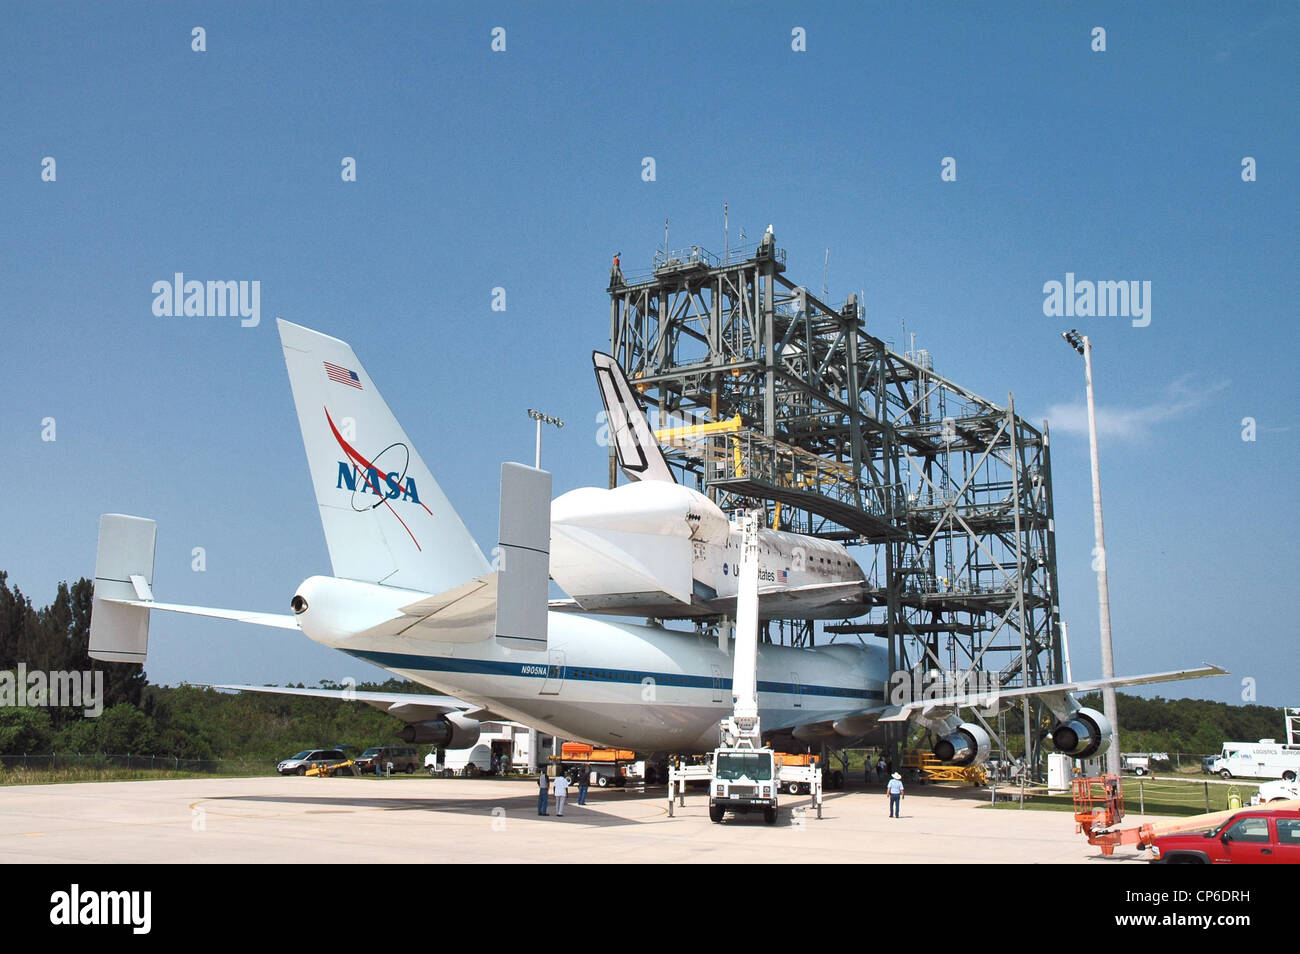 kennedy space center shuttle landing facility - photo #26